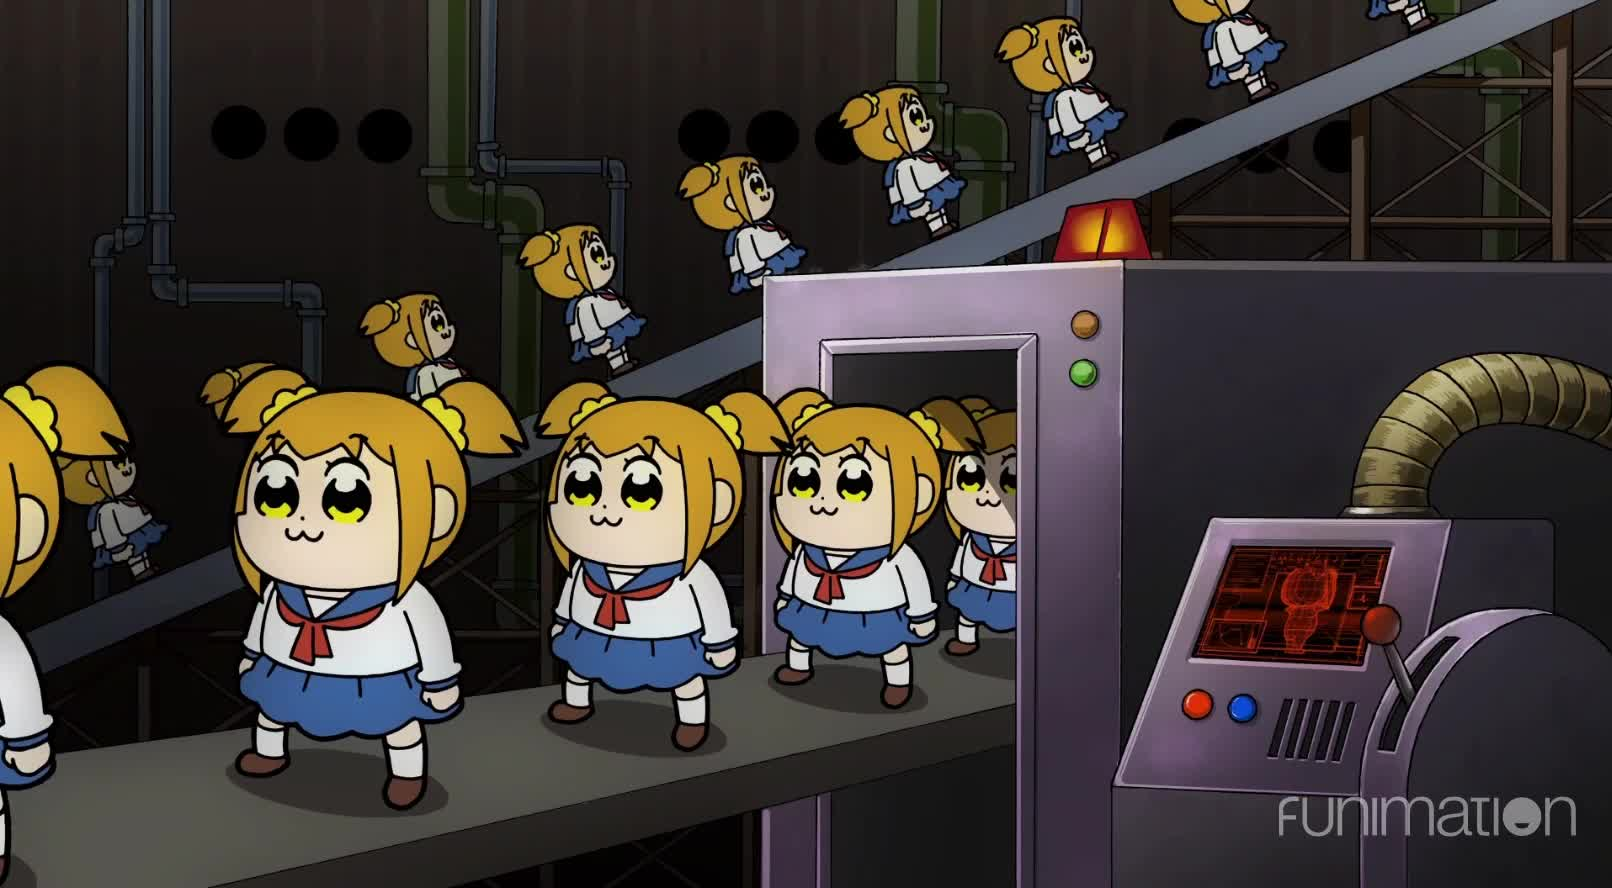 anime, cartoon, comedy, funimation, funny, pop team epic, pop team epic episode 4, Assembly line GIFs